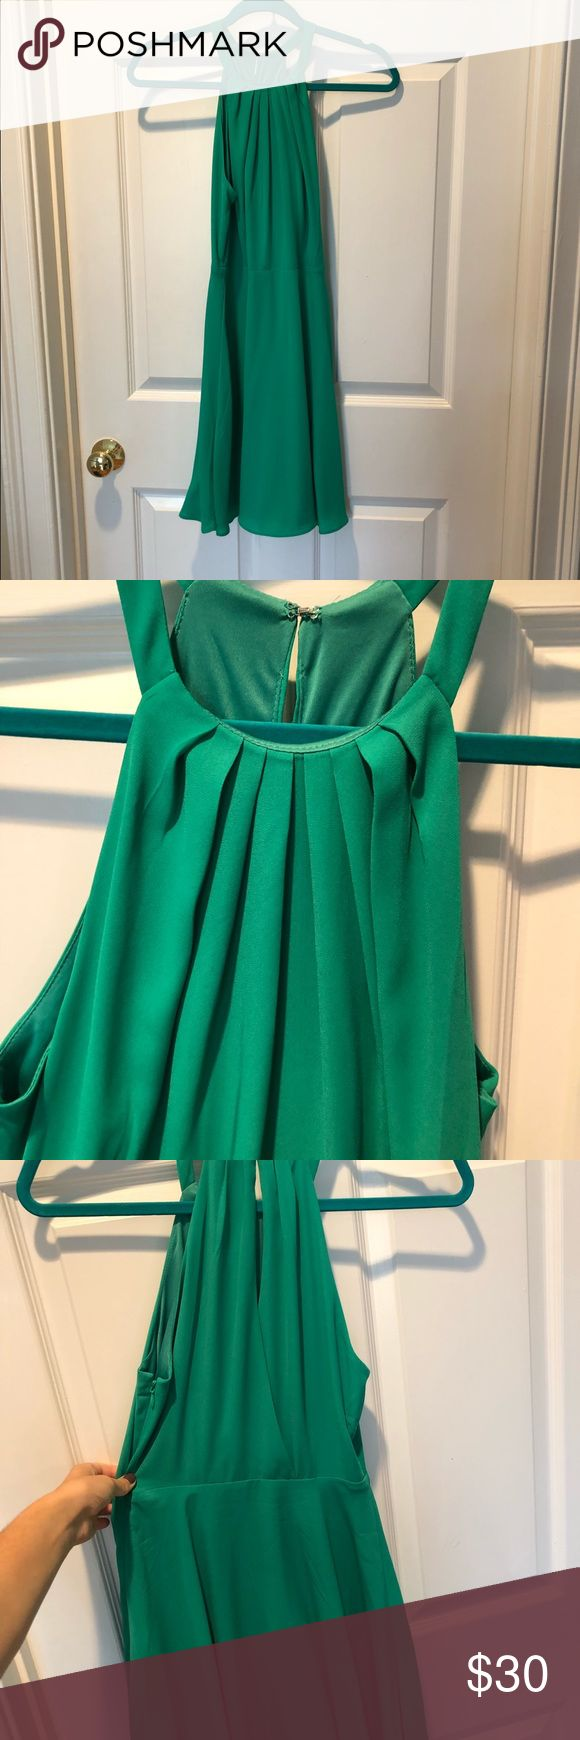 Express green fit and flare cocktail dress Express size 2 fit and flare spring green (brighter than it looks in the photos) day to night dress. High neck styling with pleats on the chest. Super flattering and fun! Only selling because I've grown out of it :). 100% Polyester. Fits true to size. Express Dresses Mini